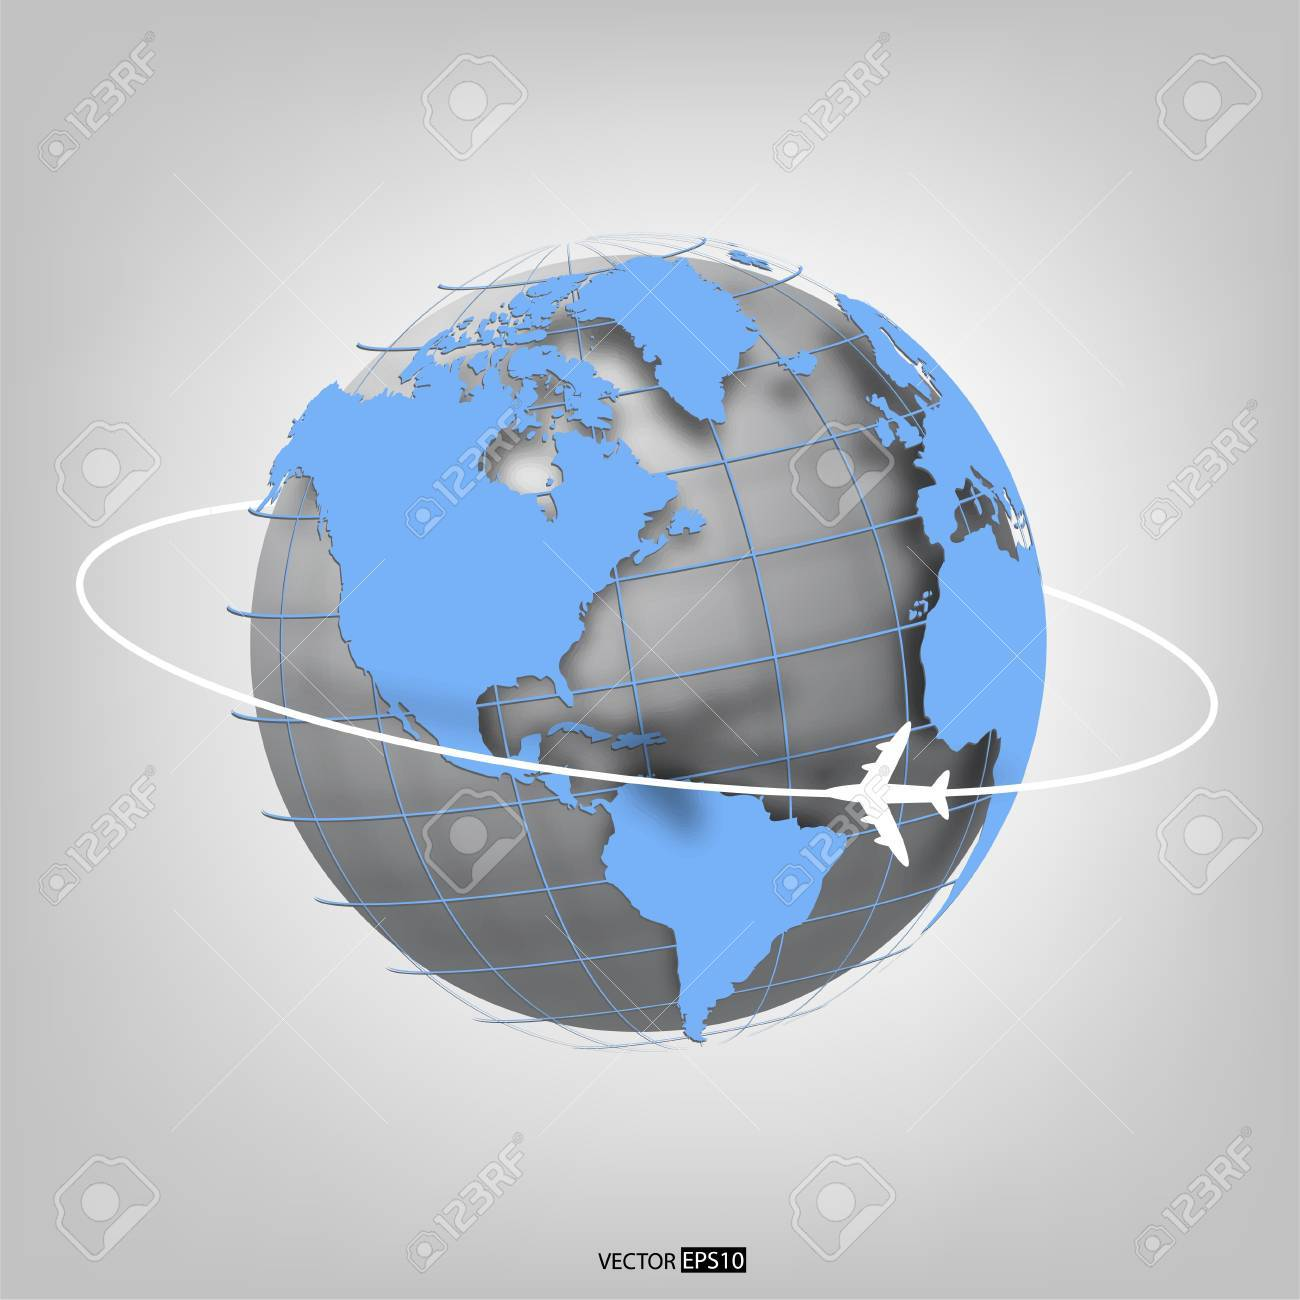 Business background with globe of the world and airplane  EPS10 vector illustration Stock Vector - 18366060